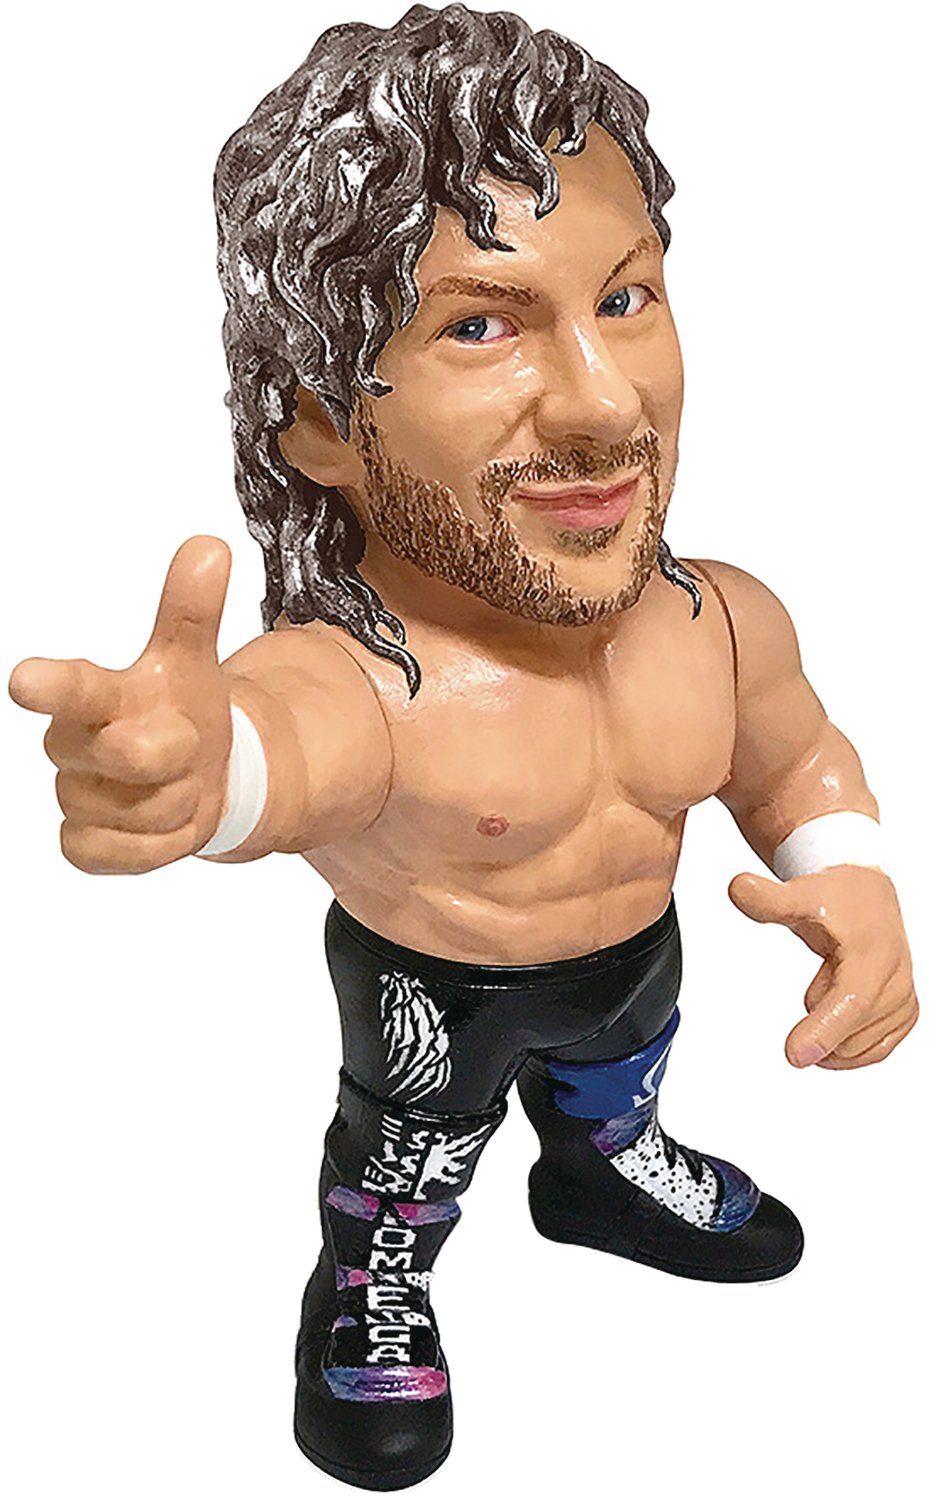 NEW JAPAN PRO-WRESTLING COLLECTION KENNY OMEGA VINYL FIG